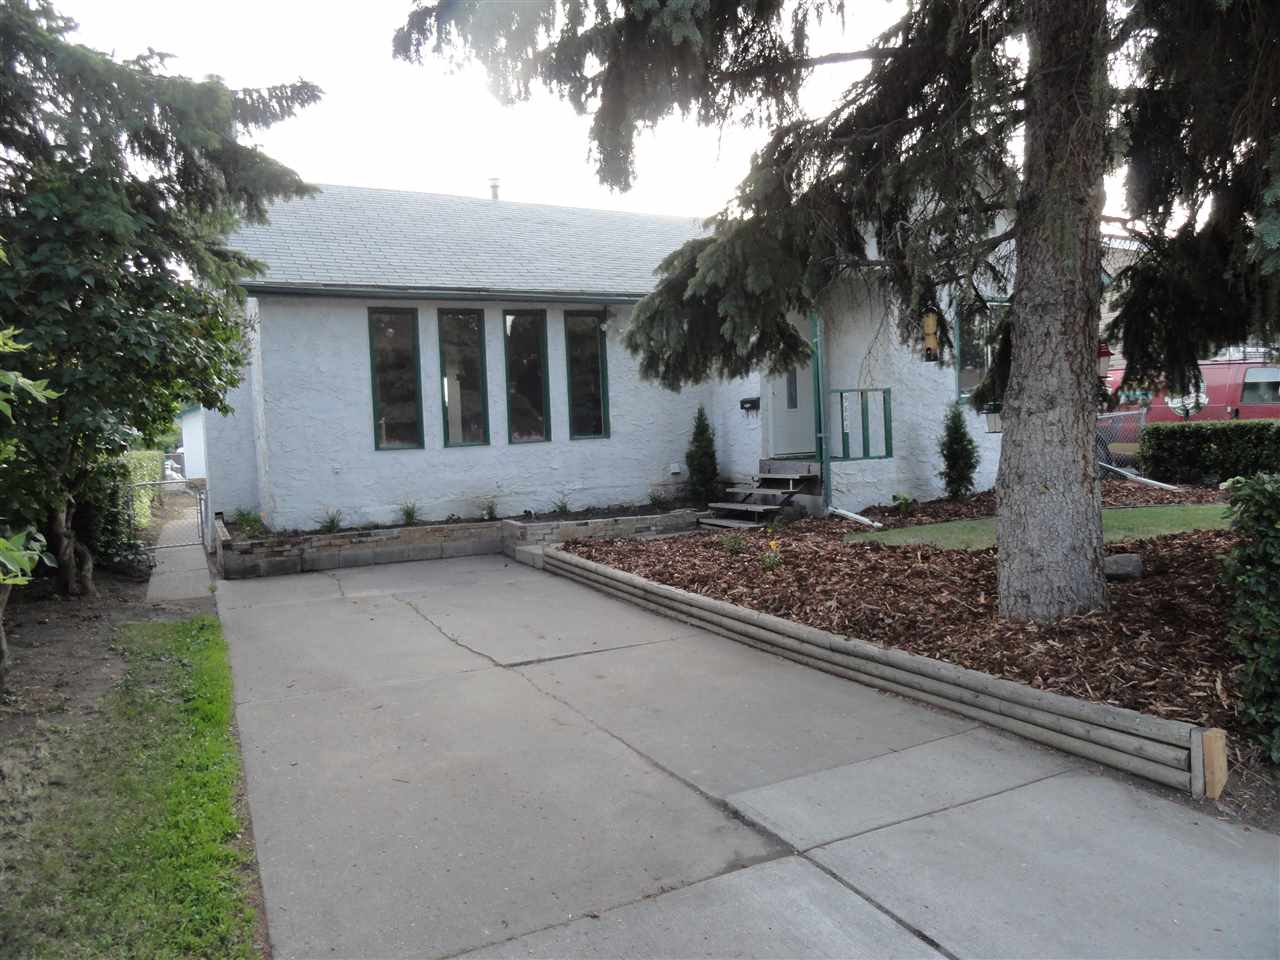 Main Photo: 9808 160 Street in Edmonton: Zone 22 House for sale : MLS® # E4071474